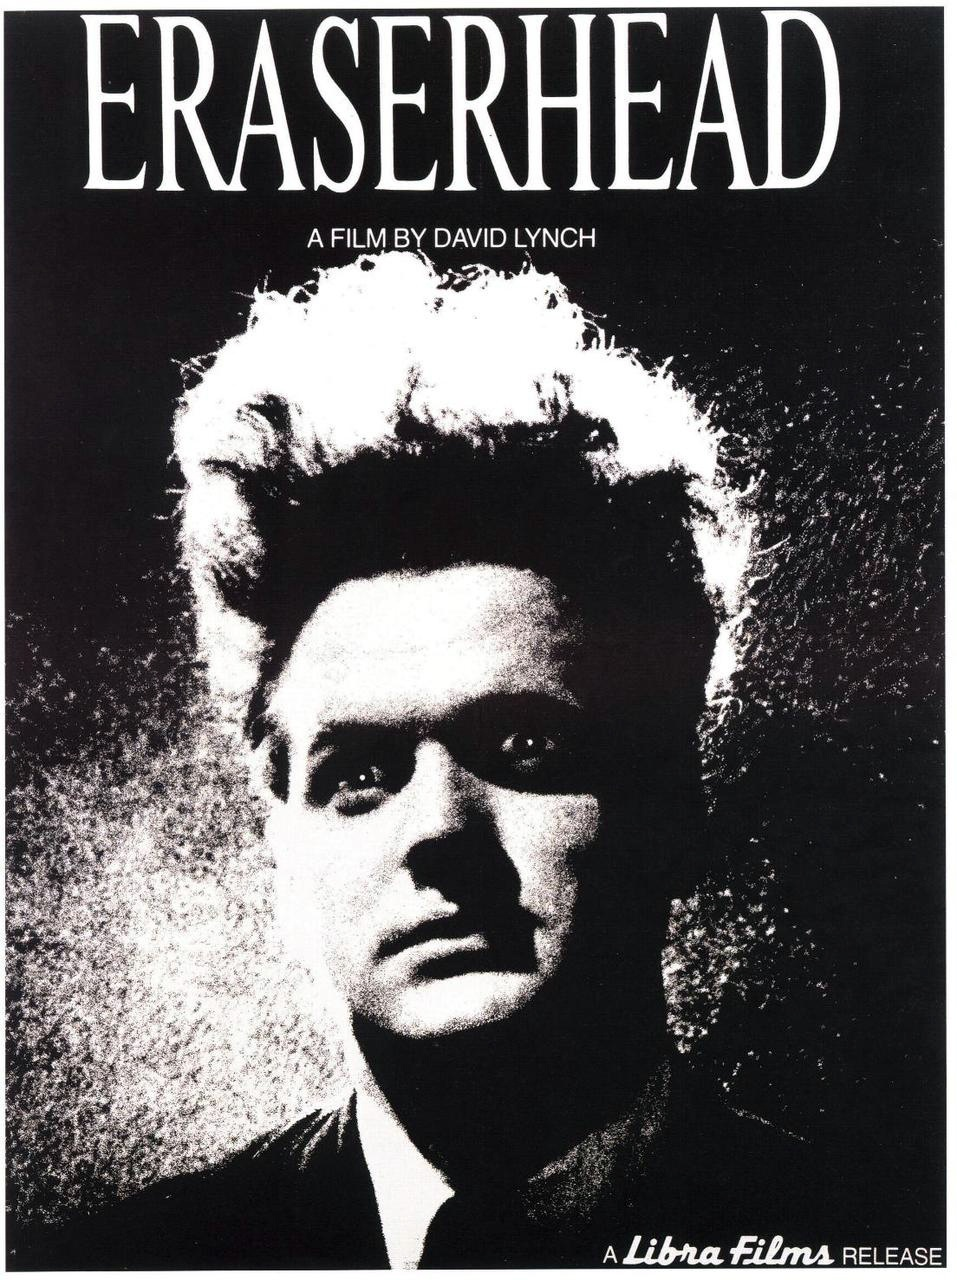 http://vignette1.wikia.nocookie.net/darksouls/images/9/93/Eraserhead_poster.jpeg/revision/latest?cb=20140408225356